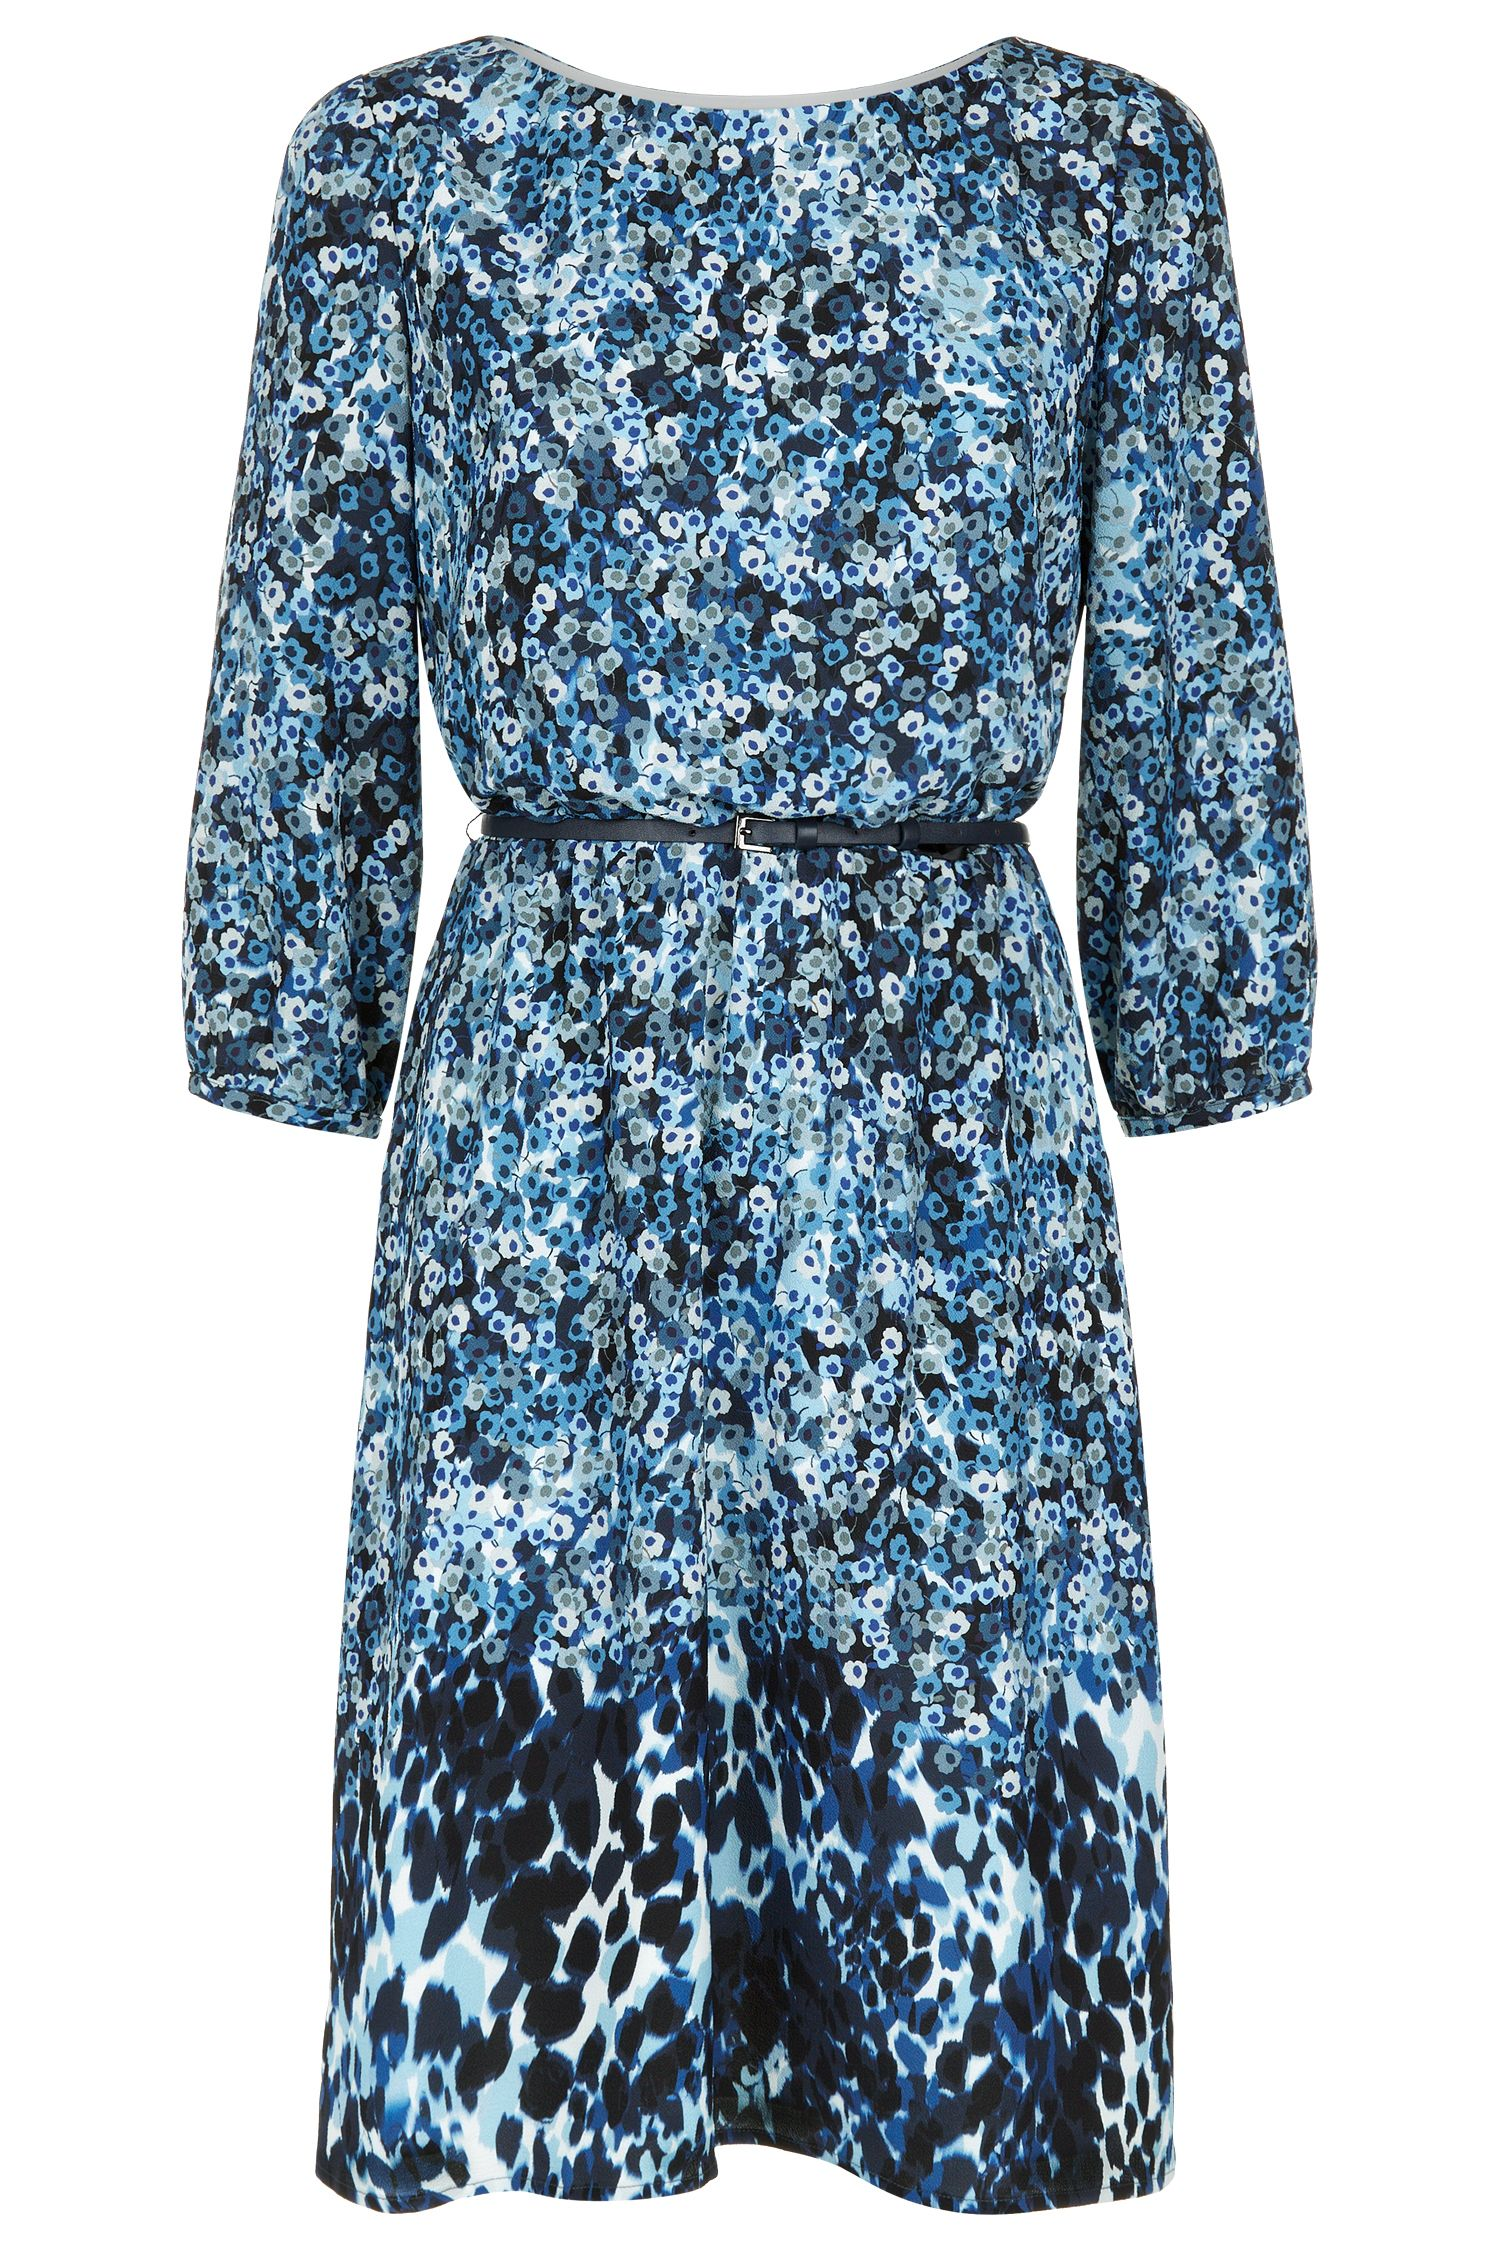 Fenn Wright Manson Cosmic Dress, Blue Multi